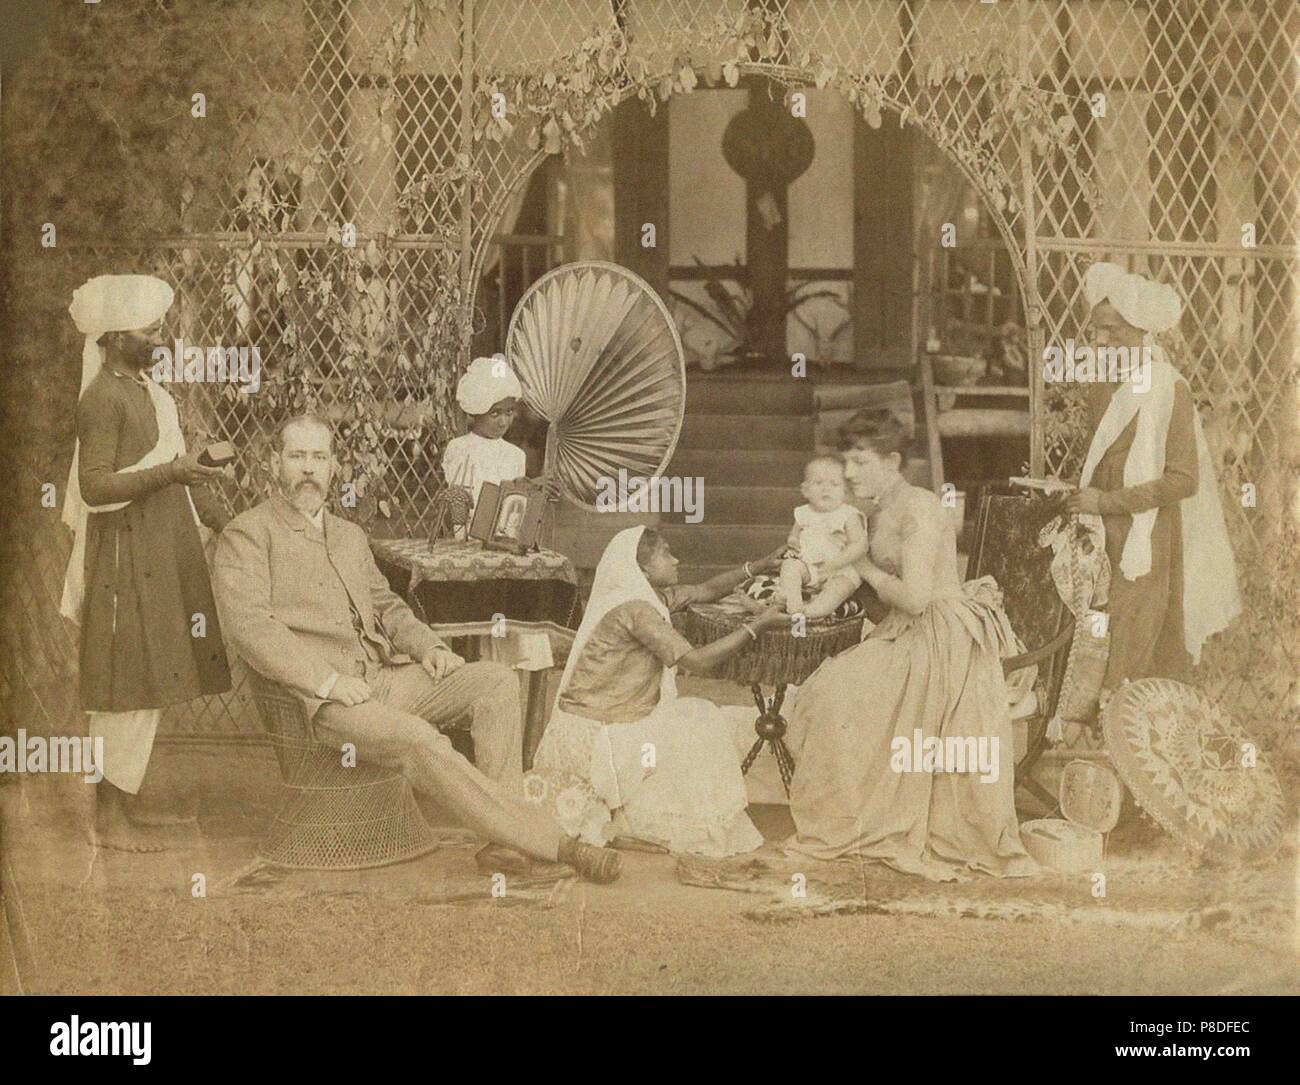 British family with Indian Servants in northeastern India. Museum: PRIVATE COLLECTION. - Stock Image